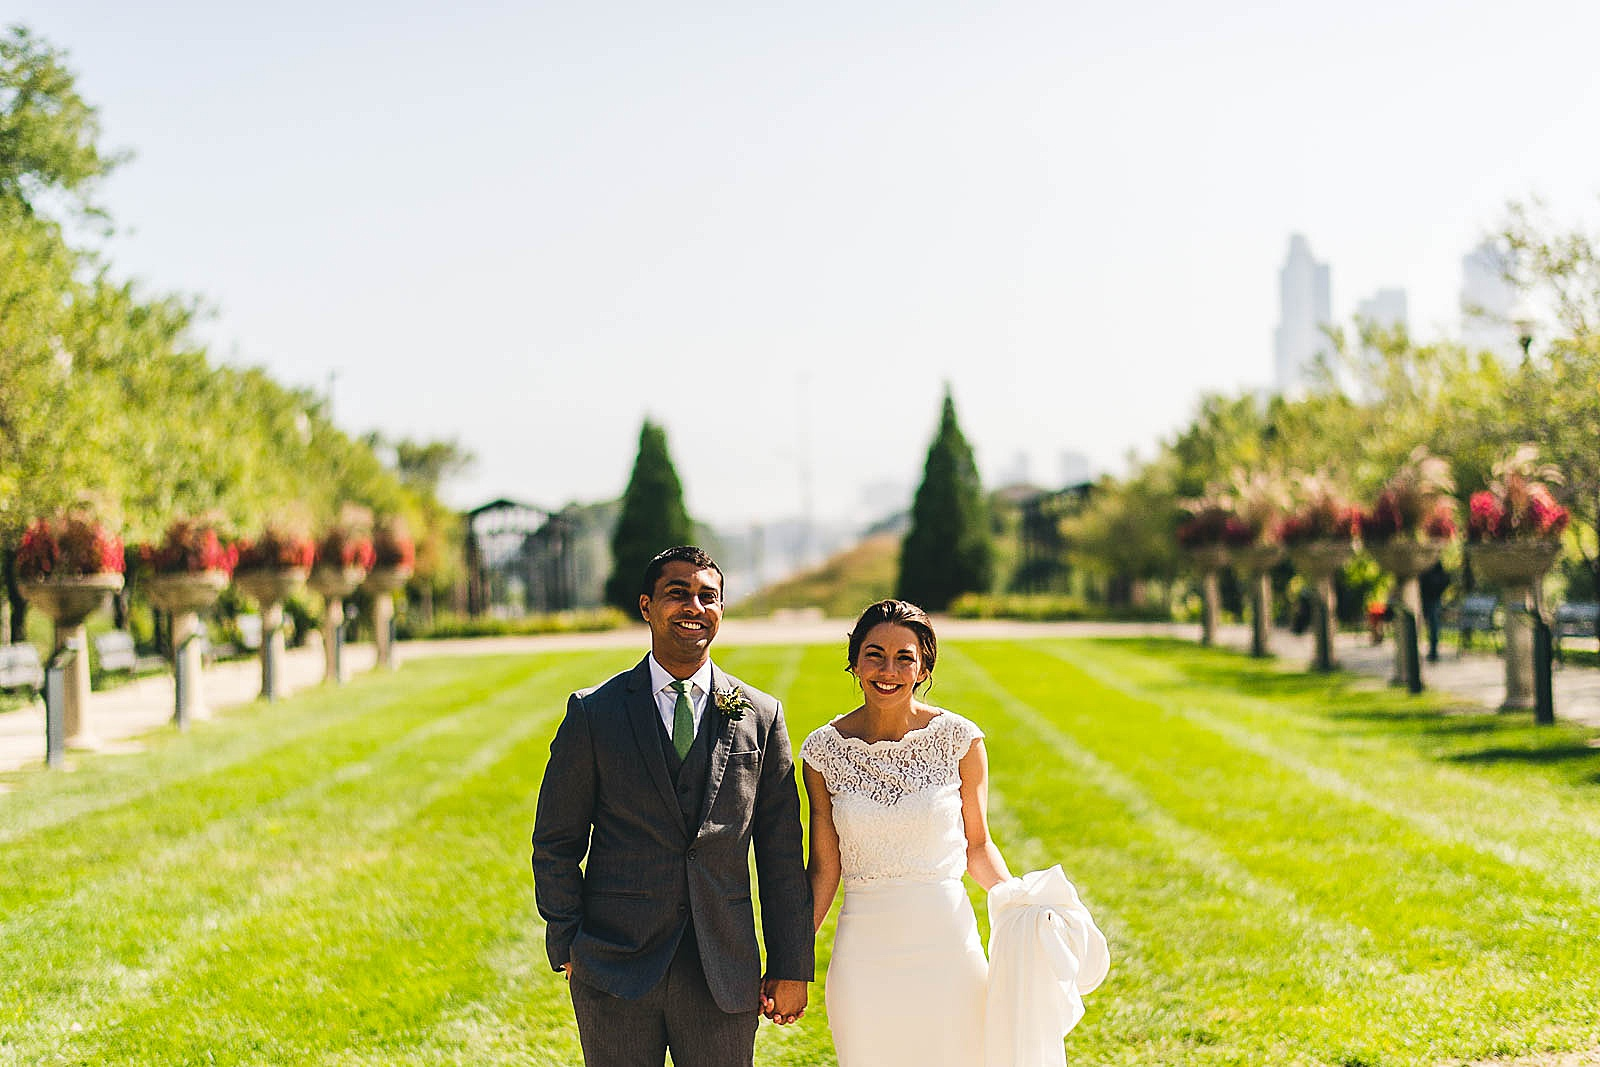 11 wedding portraits - Wedding at Bridgeport Art Center // Kylie + Sean